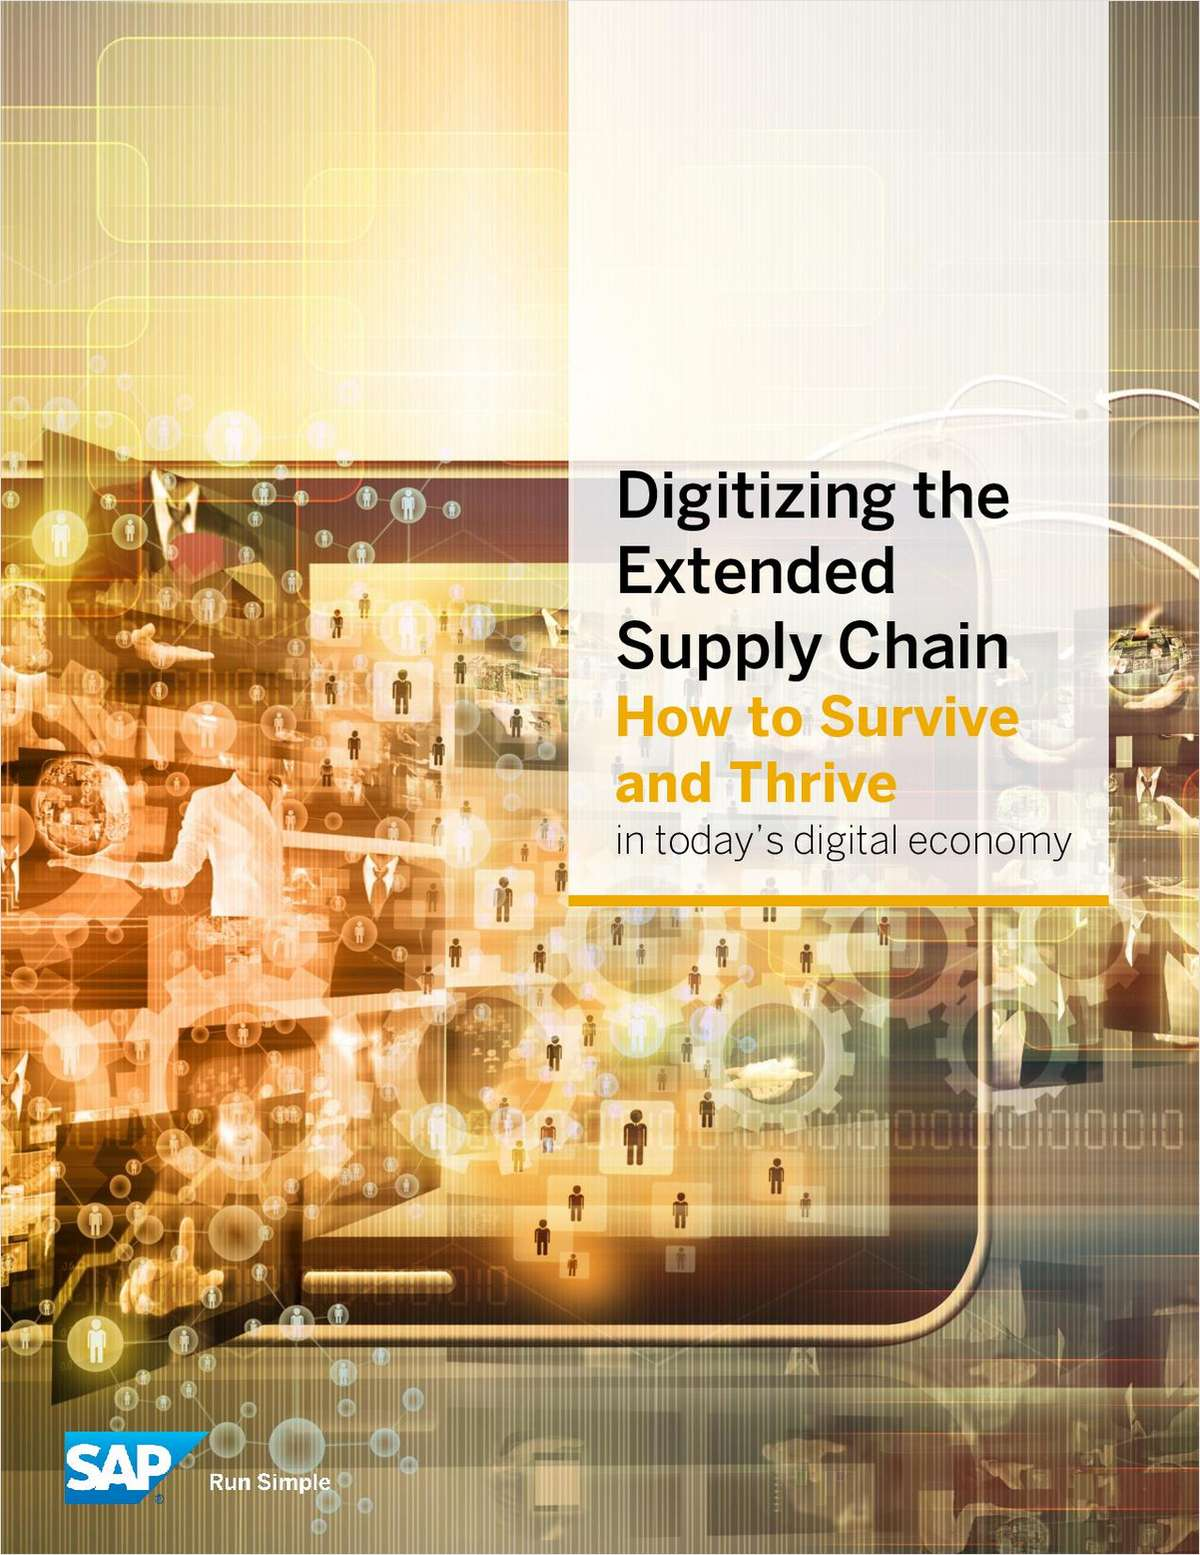 Digitizing the Extended Supply Chain: How to Survive and Thrive